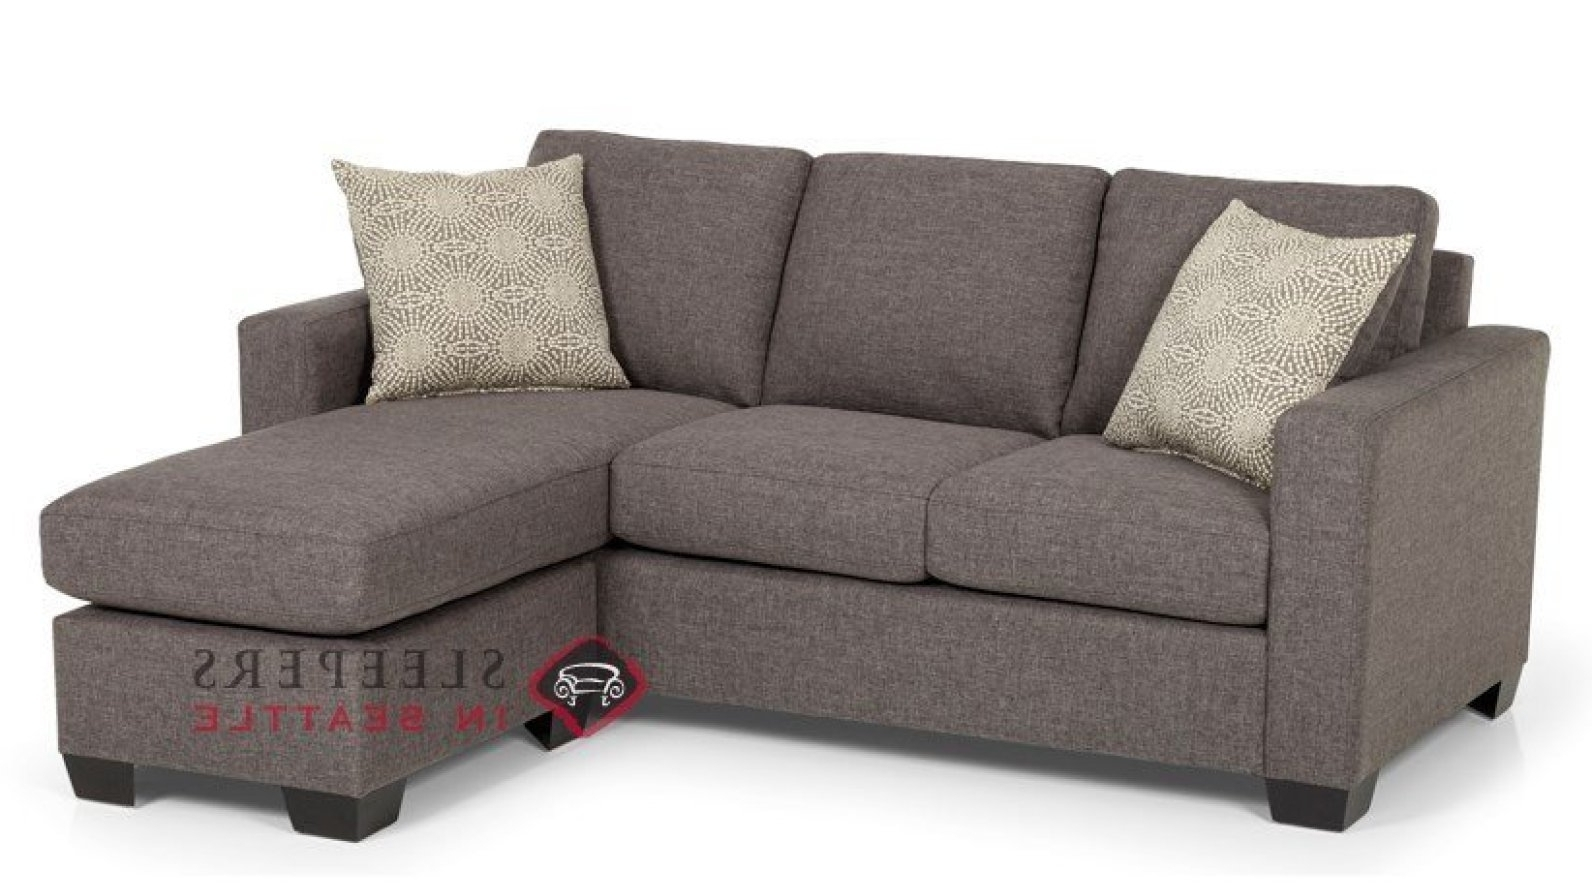 Sectional Sofas At Craigslist Within Most Up To Date Stylish Sectional Sofas On Craigslist – Mediasupload (View 16 of 20)